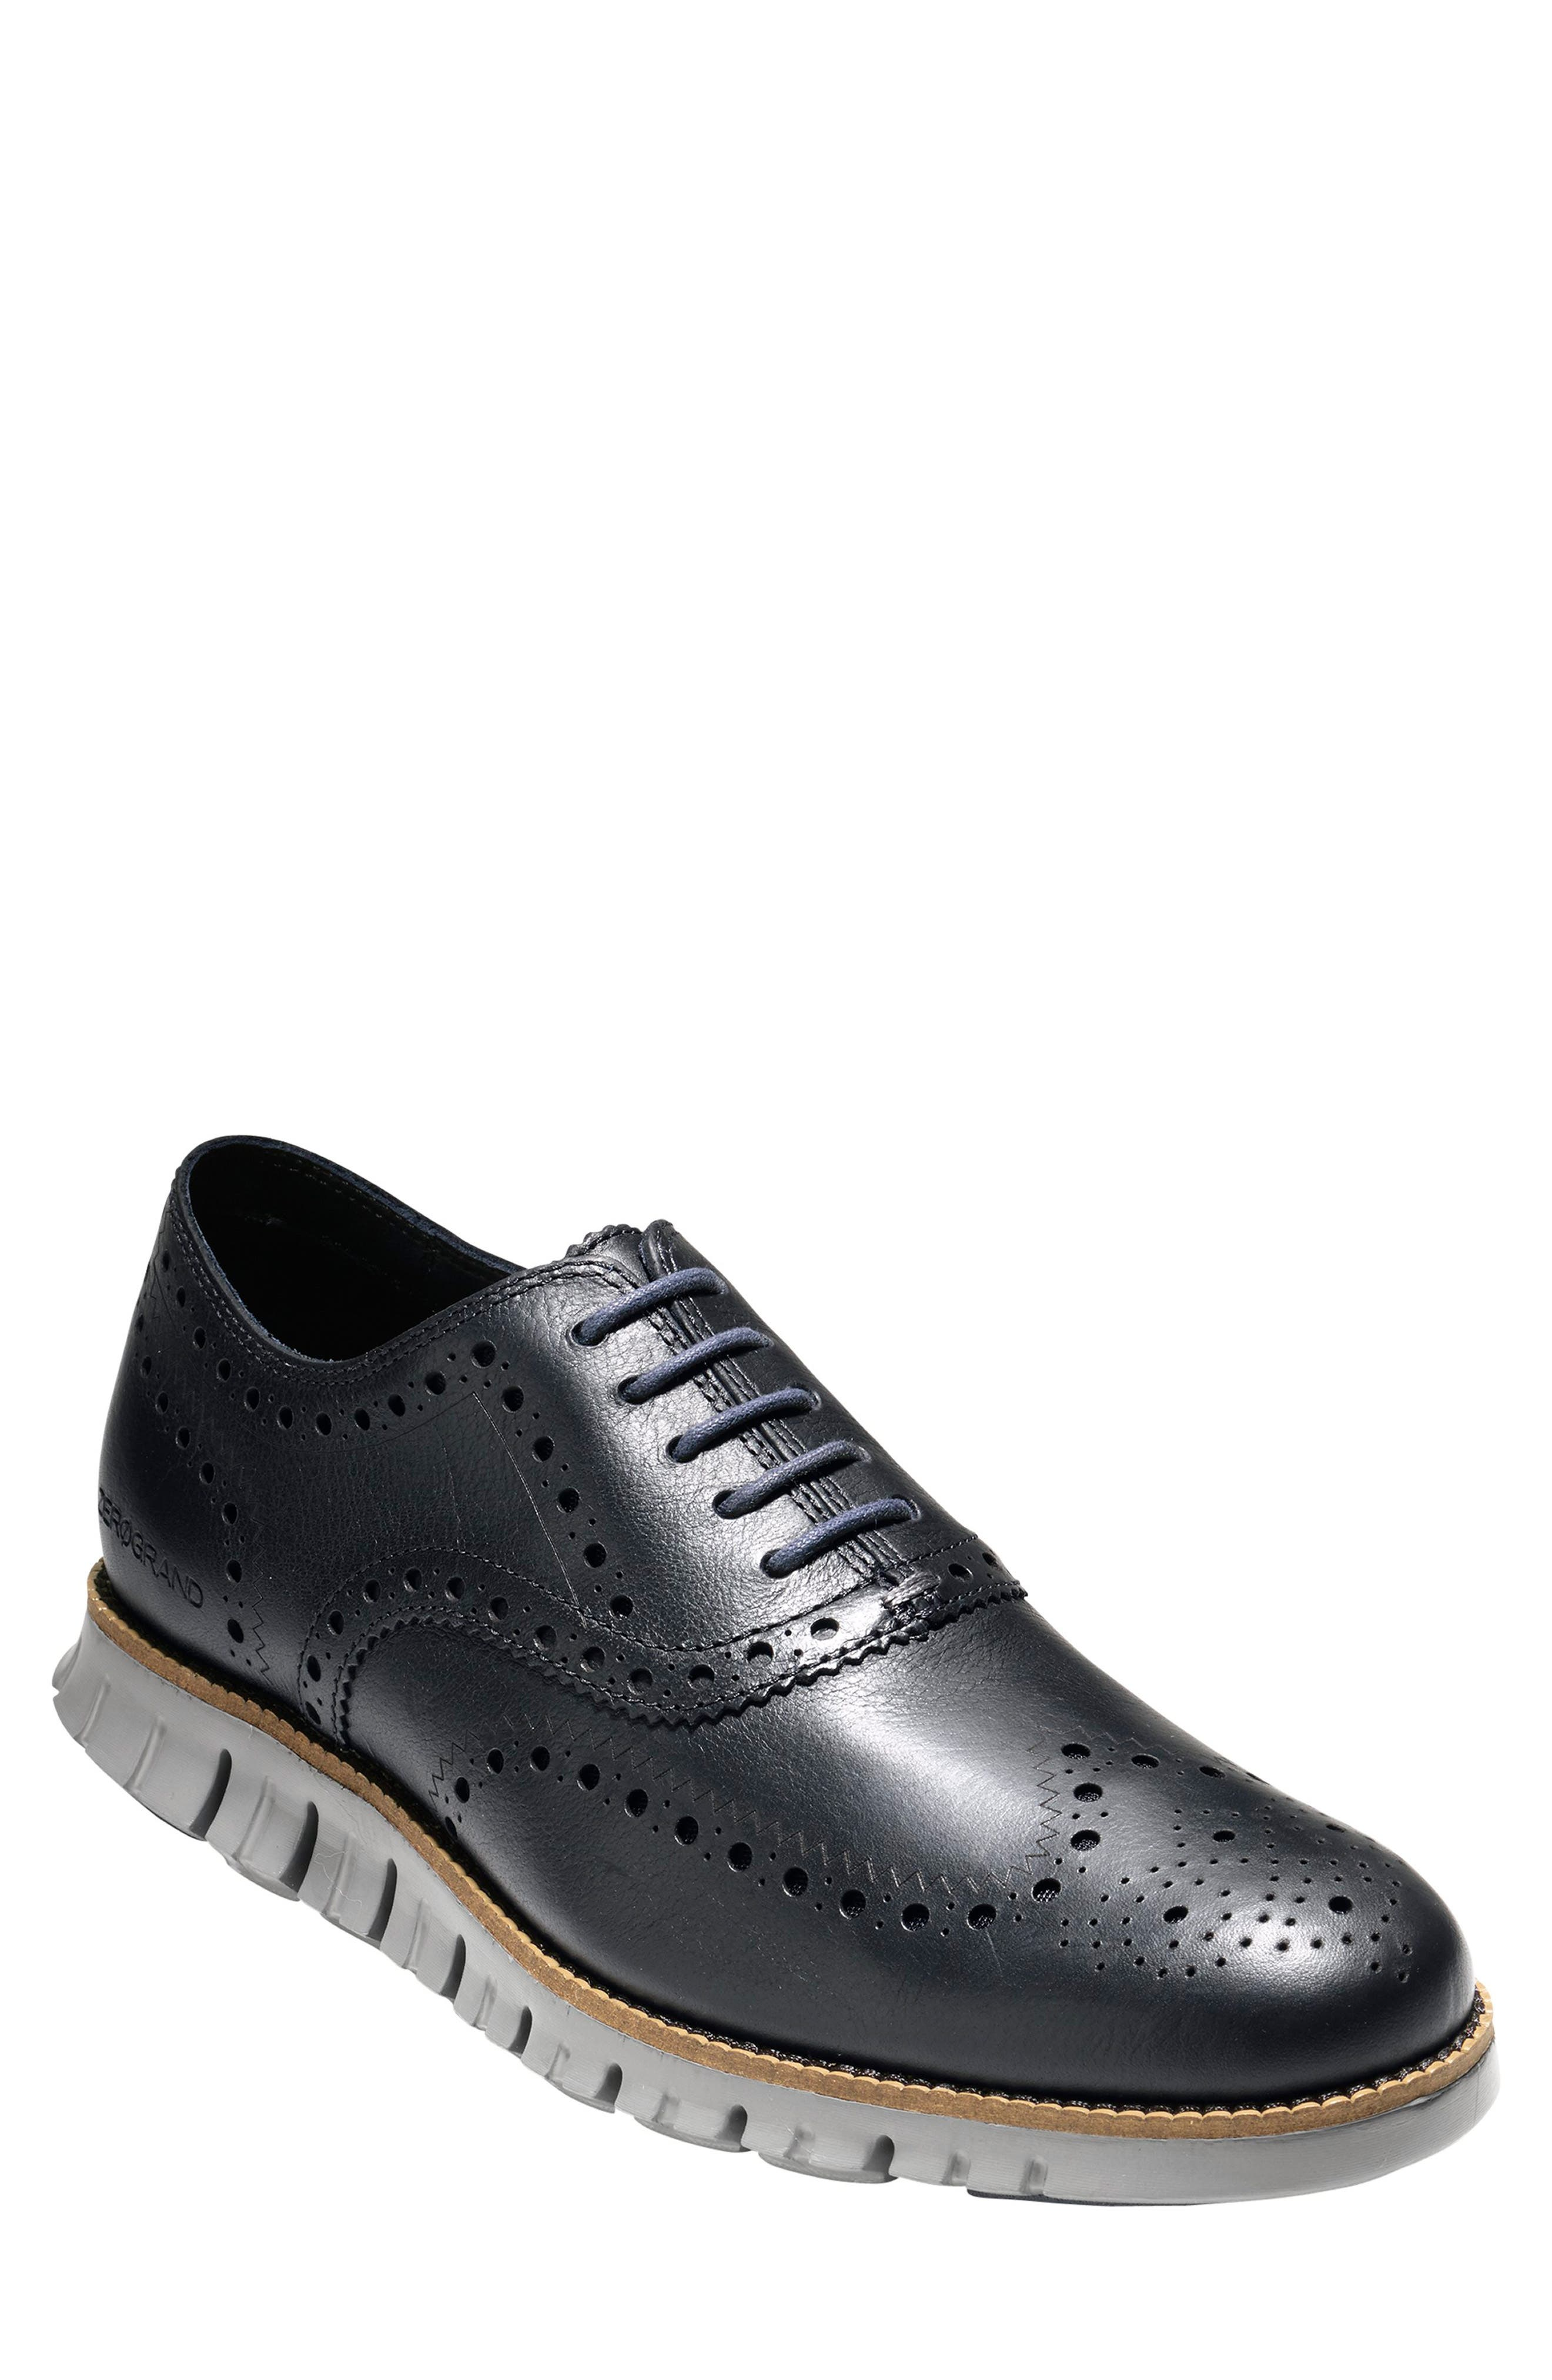 'ZeroGrand' Wingtip Oxford, Main, color, NAVY INK LEATHER